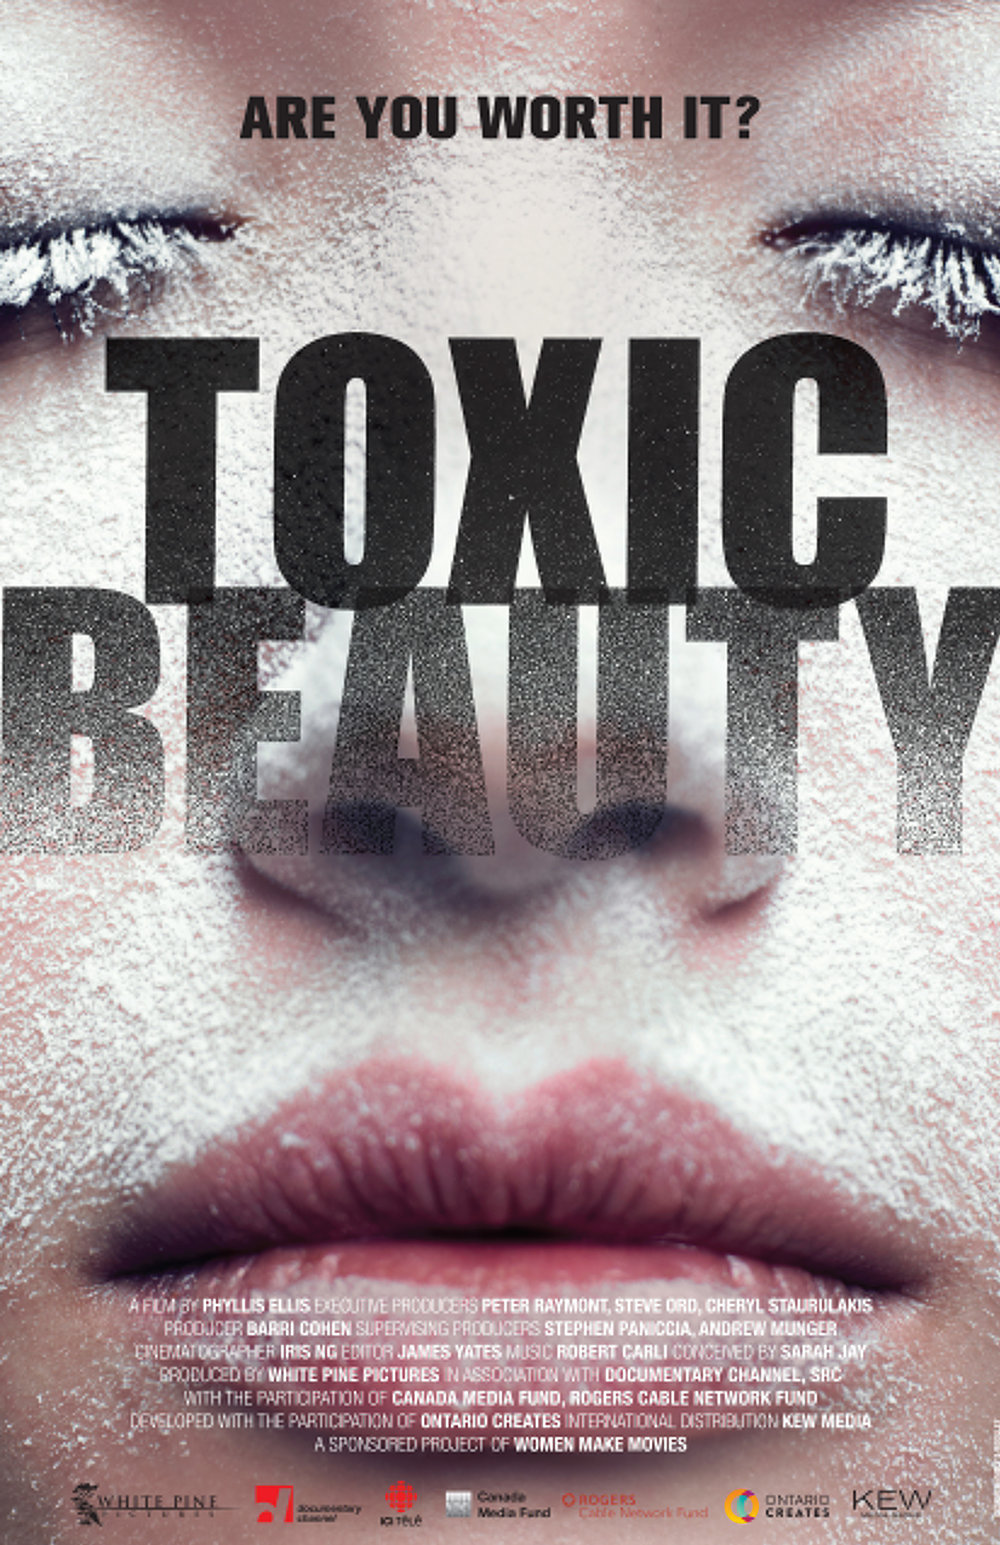 TOXIC BEAUTY WORLD PREMIÈRE HOT DOCS 2019  The toxic truth will finally be told.  TOXIC Beauty  details the true cost of our collective overexposure to unregulated toxins through personal care, and the causal link between talc and ovarian cancer. The chemicals we use and absorb each day in the name of beauty and hygiene are causing us great harm. Directed by Phyllis Ellis. Produced by White Pine Pictures. Conceived by Sarah Jay. Because you're worth it.